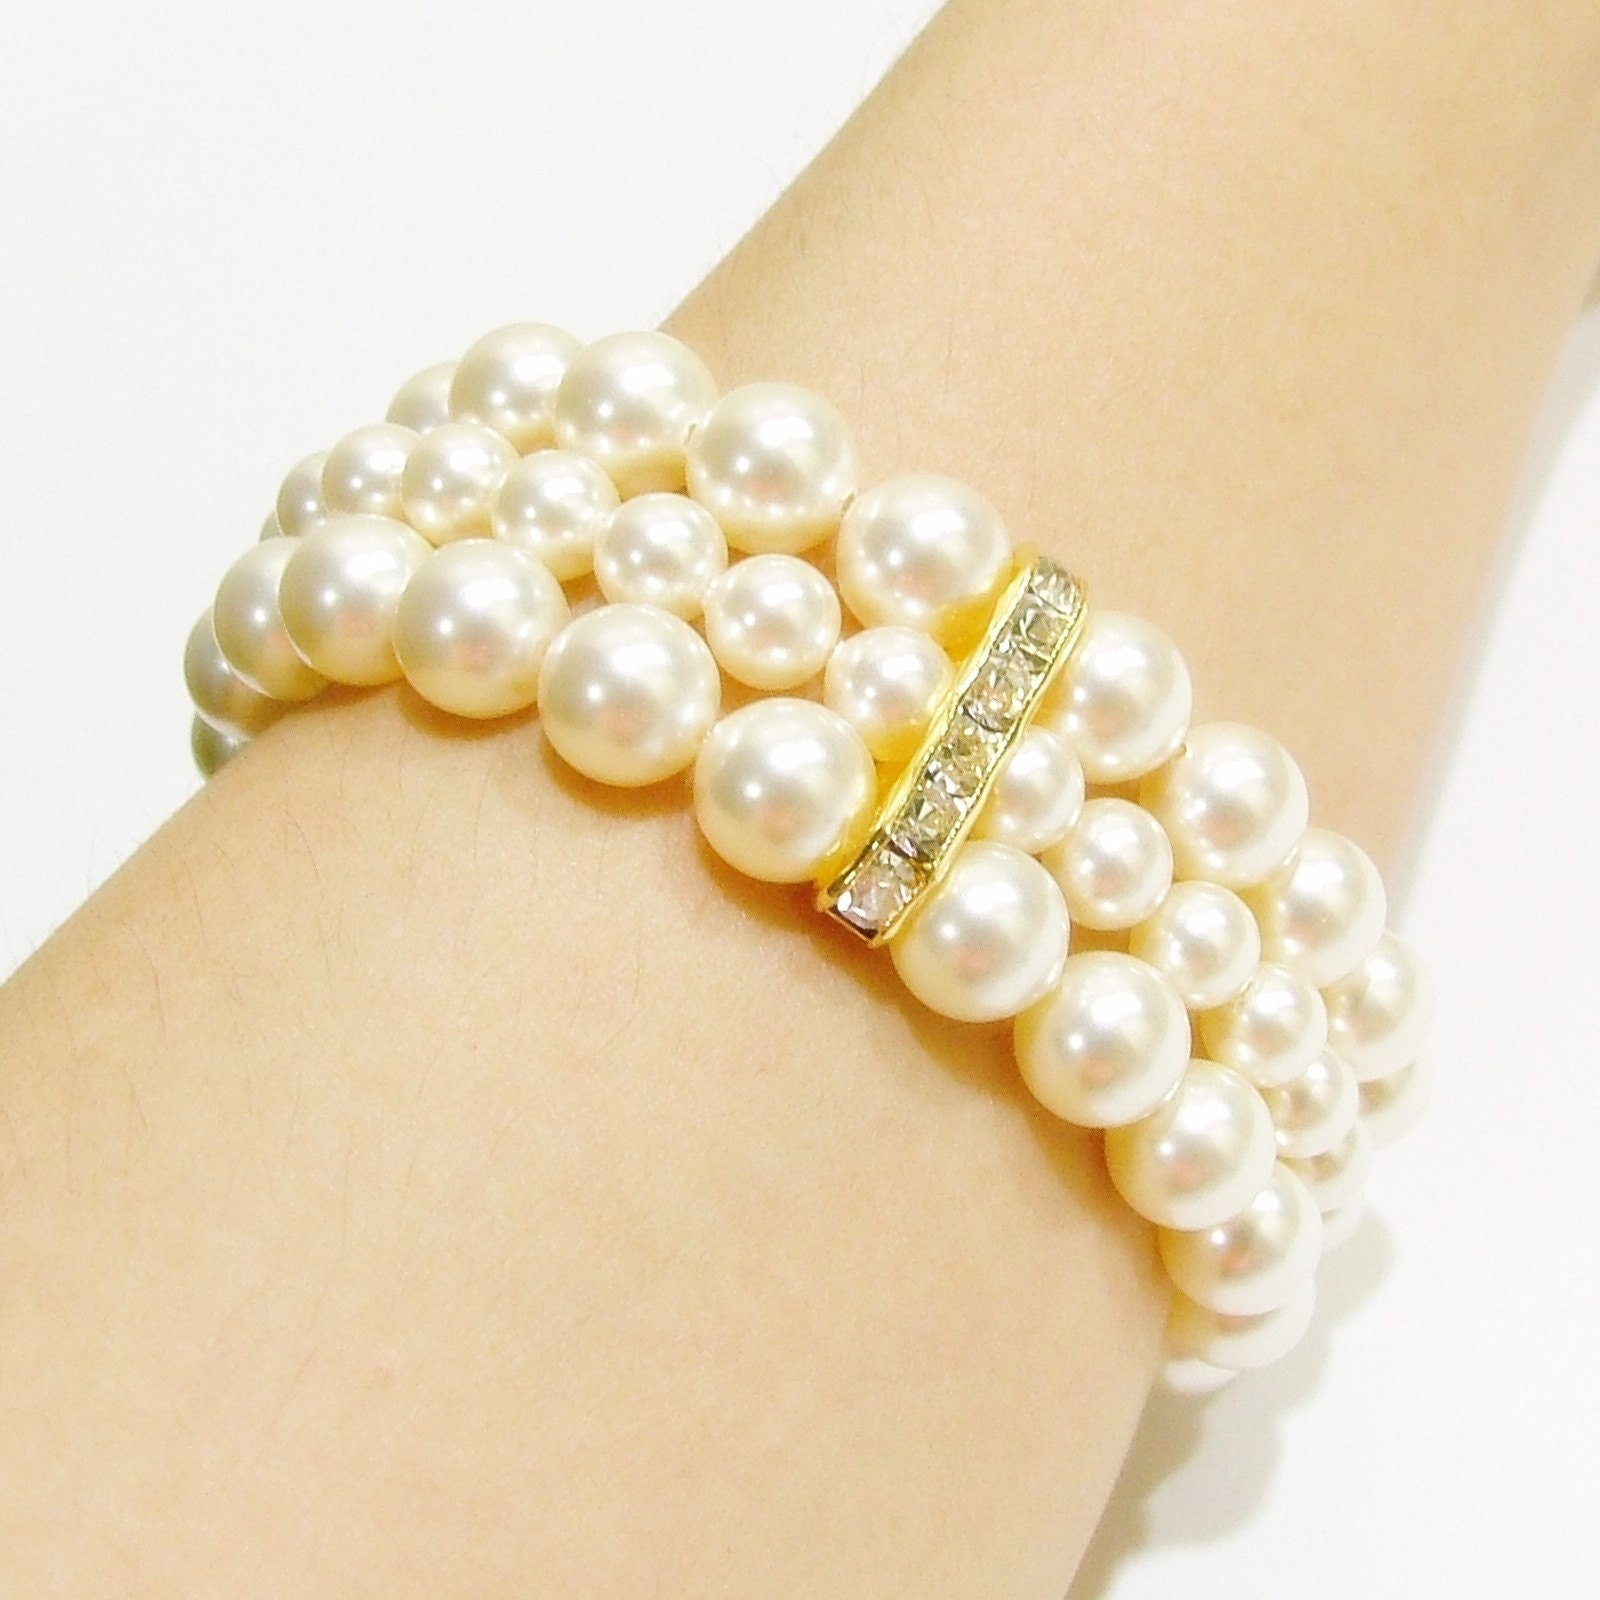 Elegant Pearl Bracelet - 3 Strands and Spacers